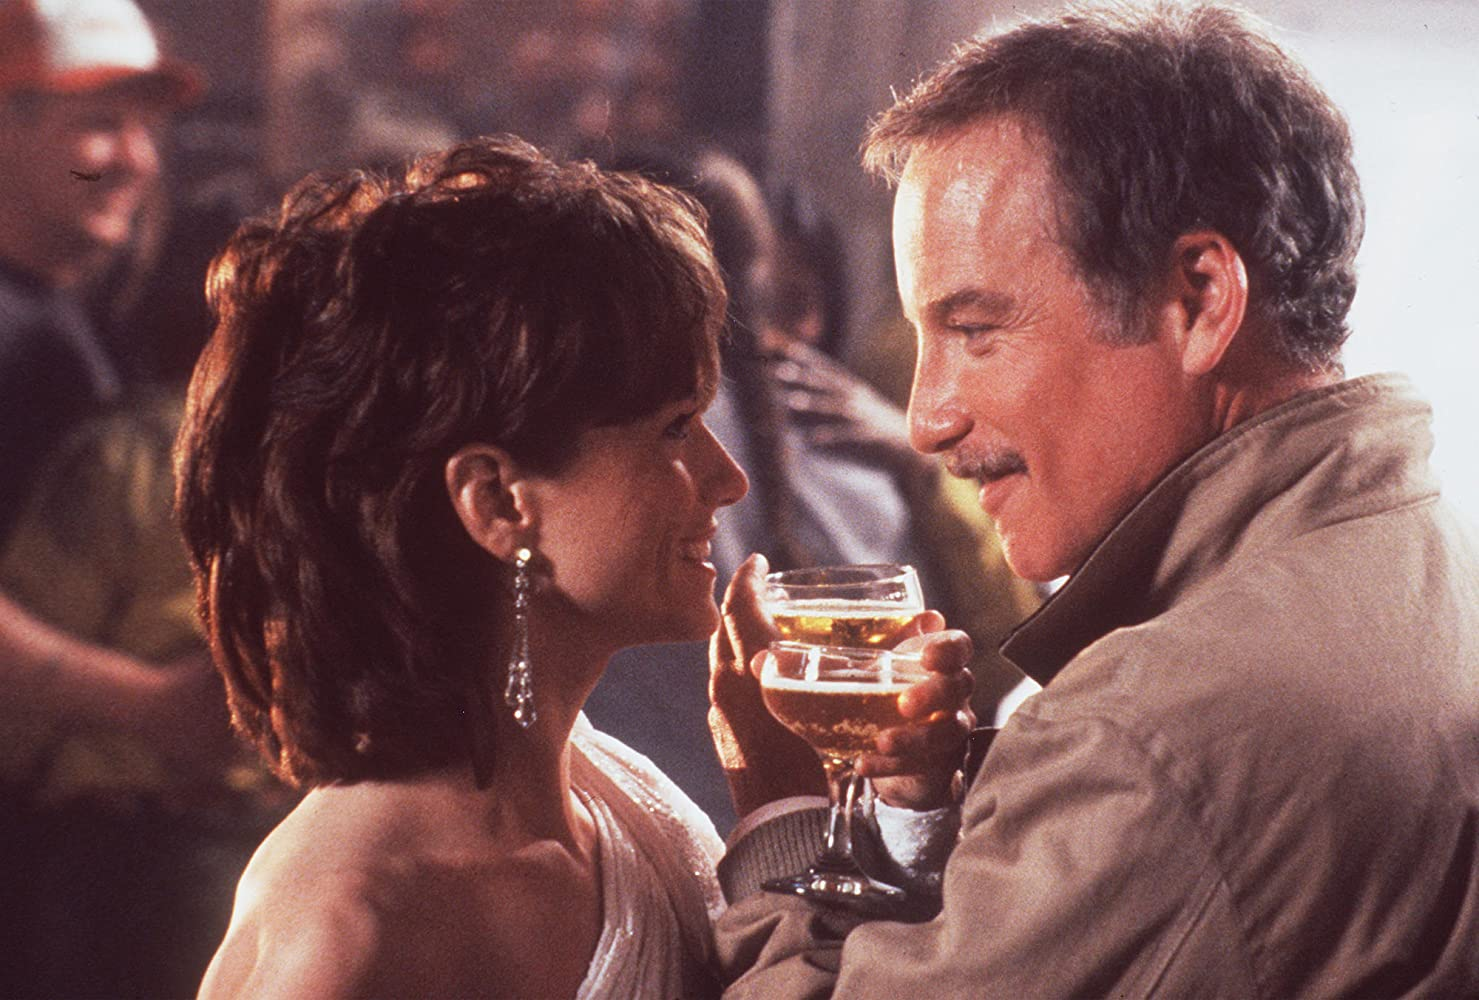 Richard Dreyfuss and Holly Hunter in Always (1989)